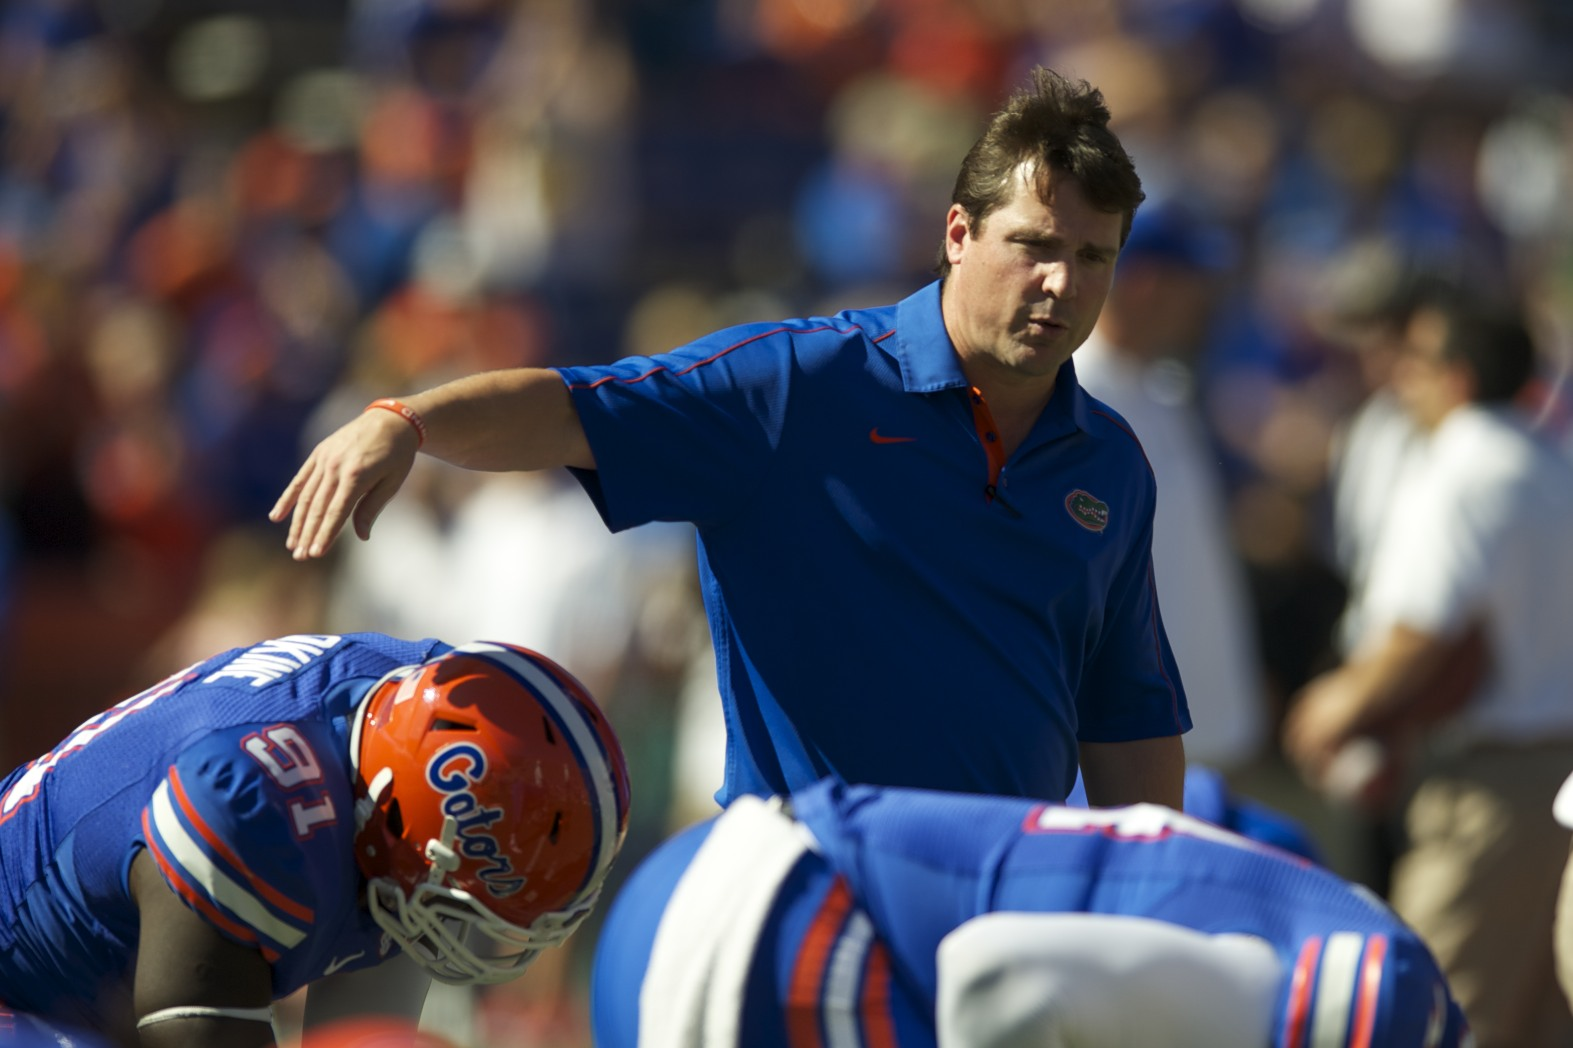 Florida head coach Will Muschamp encourages his team during warm ups before the game against South Carolina Saturday afternoon.